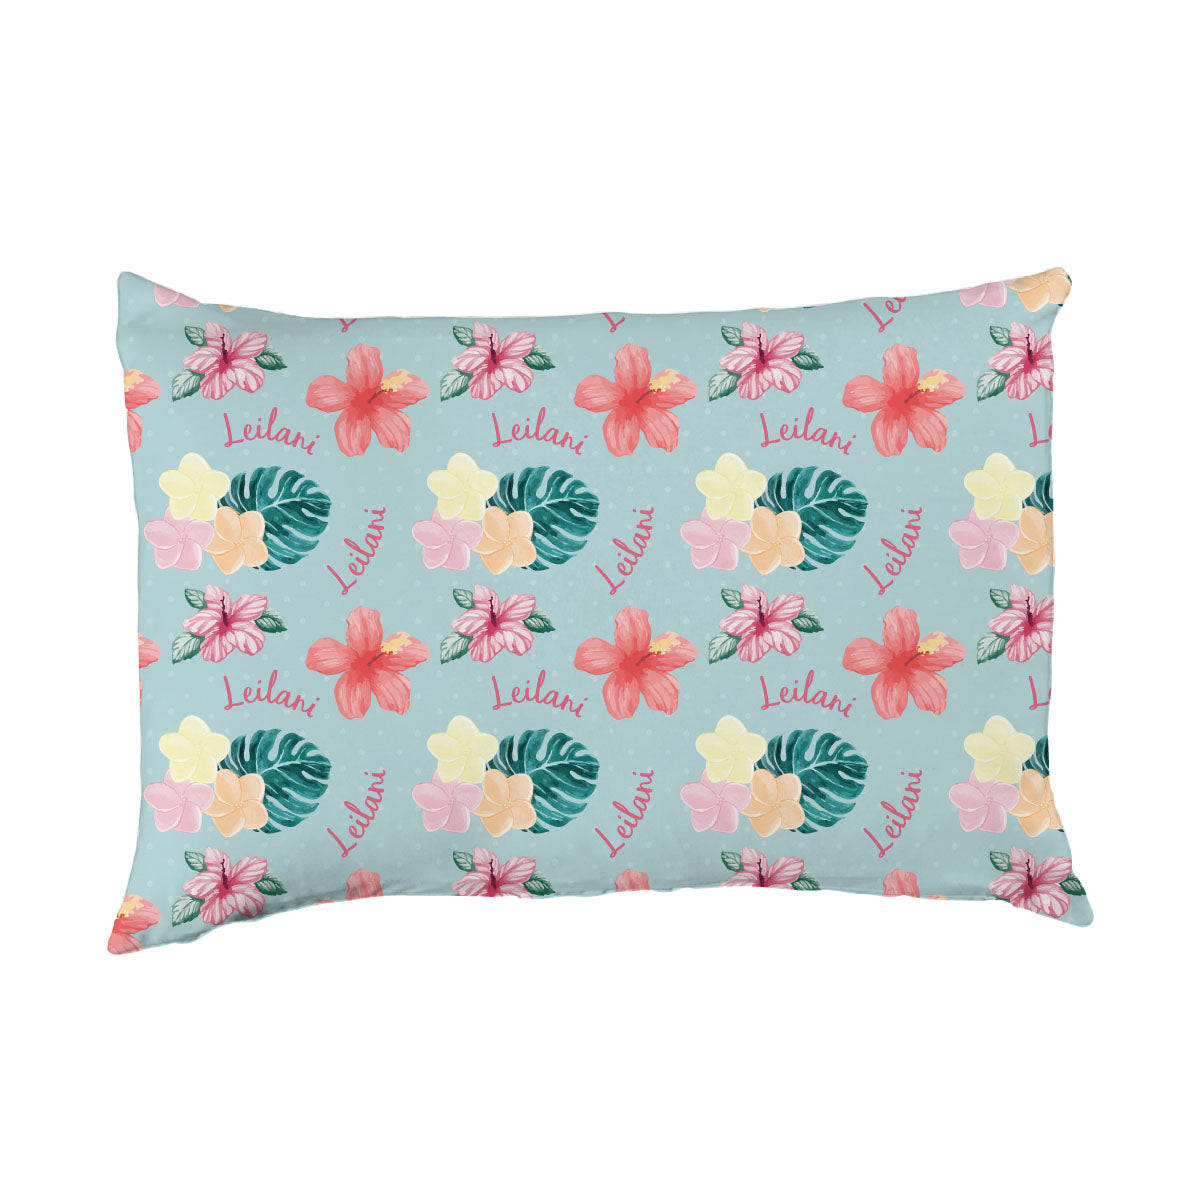 Leilani's Hawaiian Floral | Big Kid Pillow Case